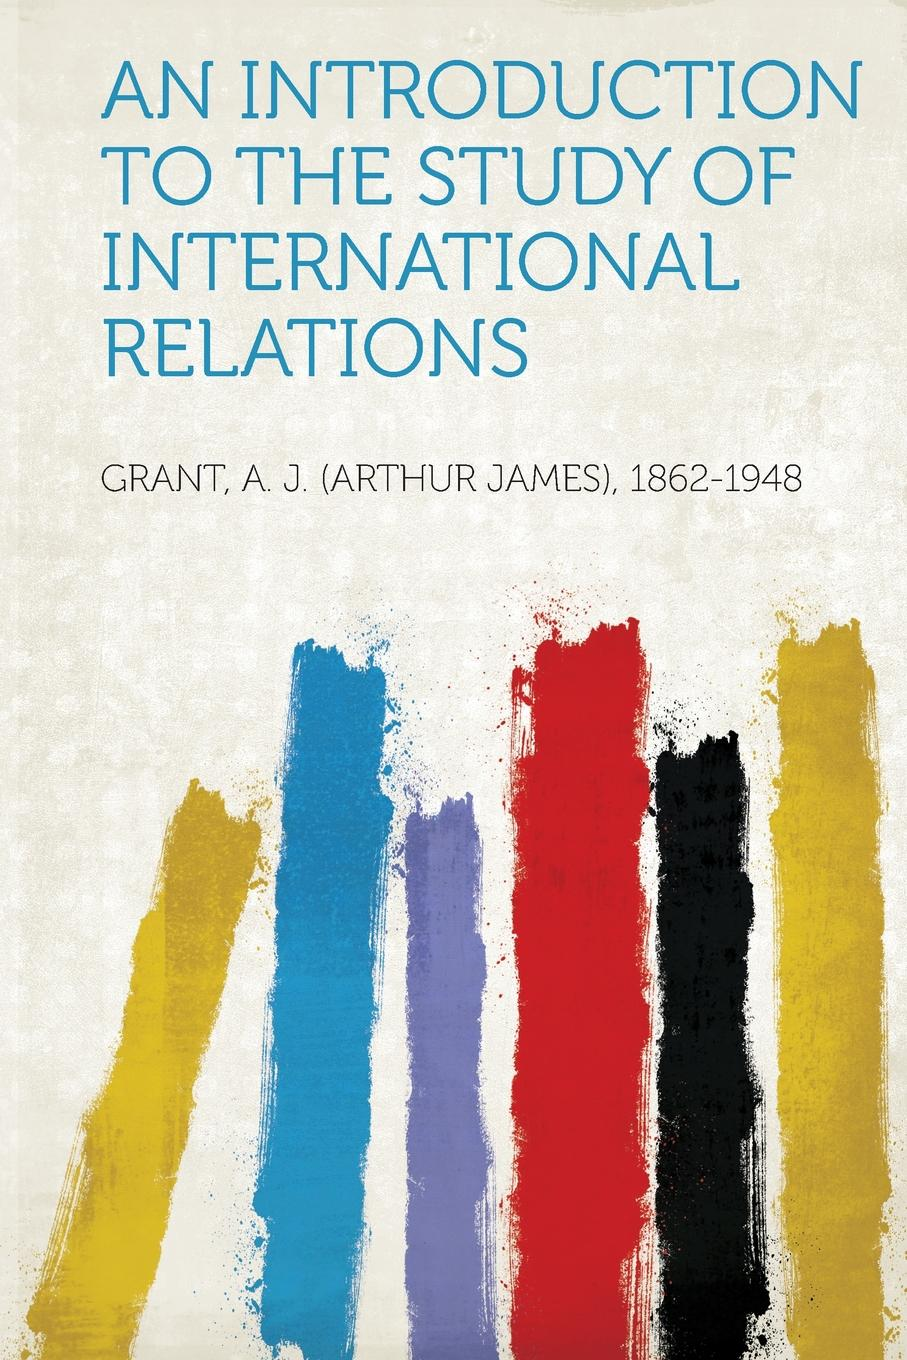 Grant A. J. (Arthur James) 1862-1948 An Introduction to the Study of International Relations introduction to international relations